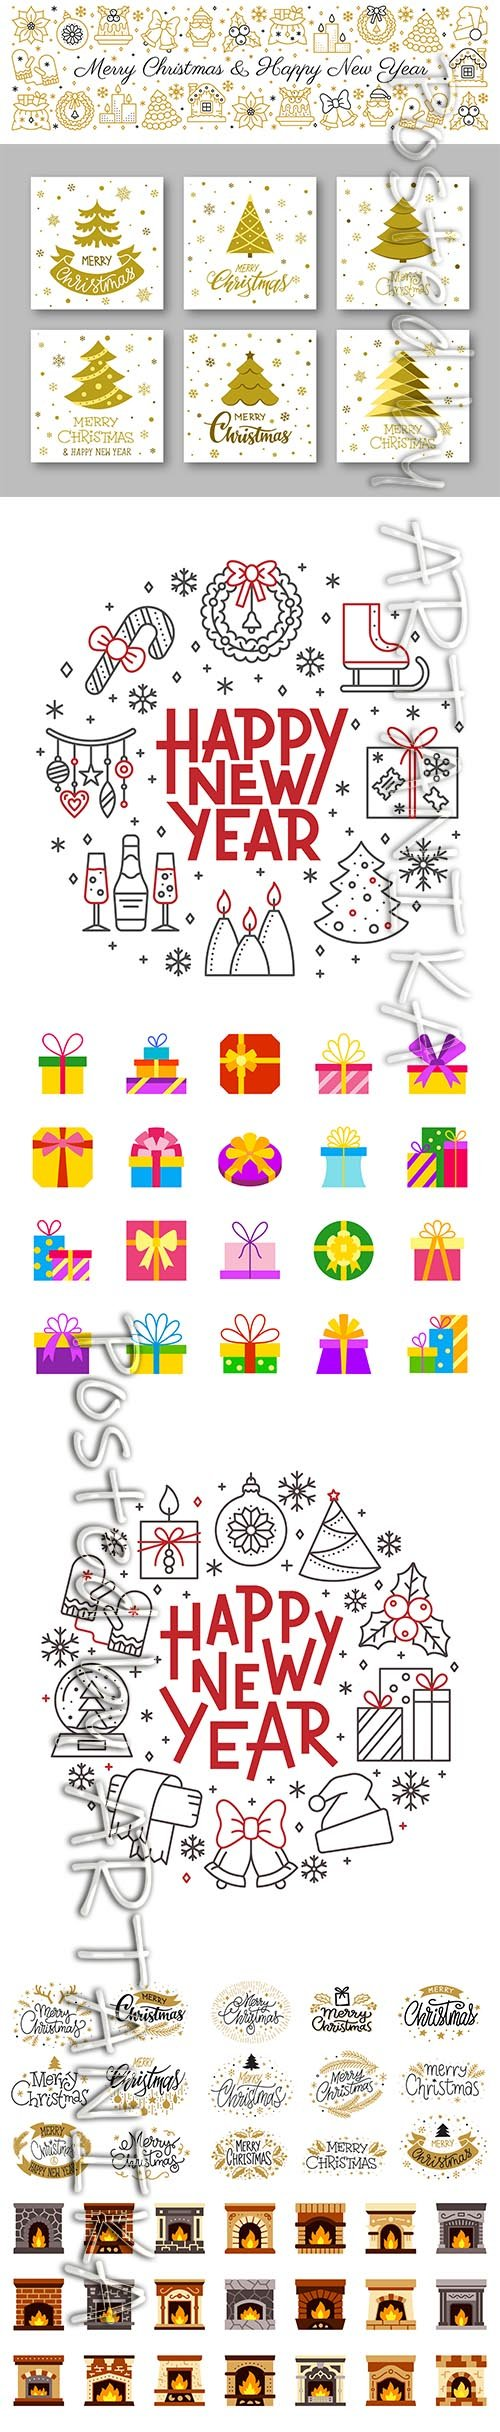 Merry Christmas Gold and Black Lettering Text Illustrations ans Icons Set